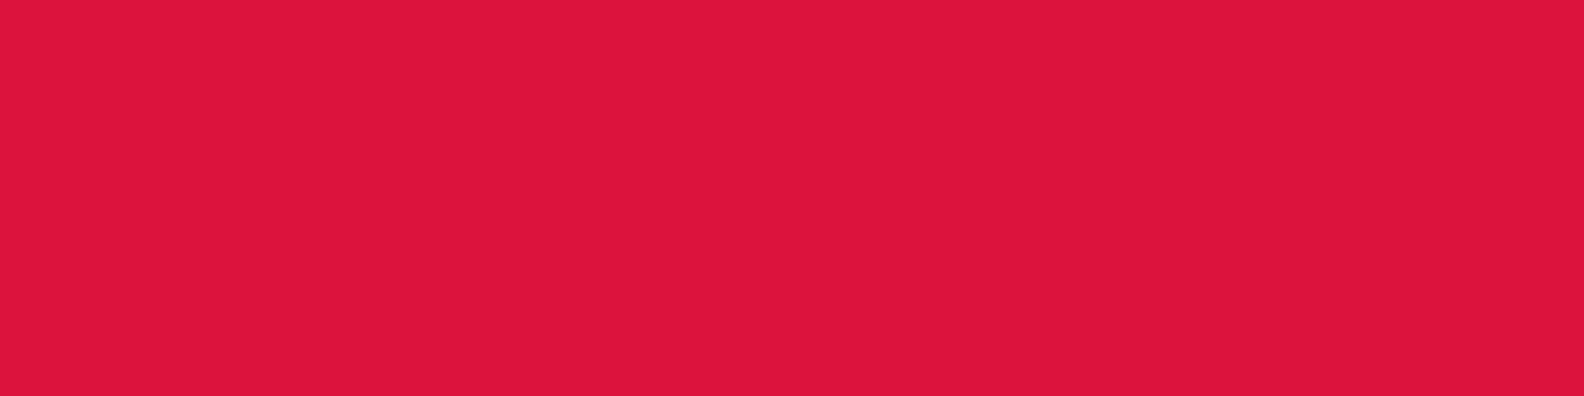 1584x396 Crimson Solid Color Background